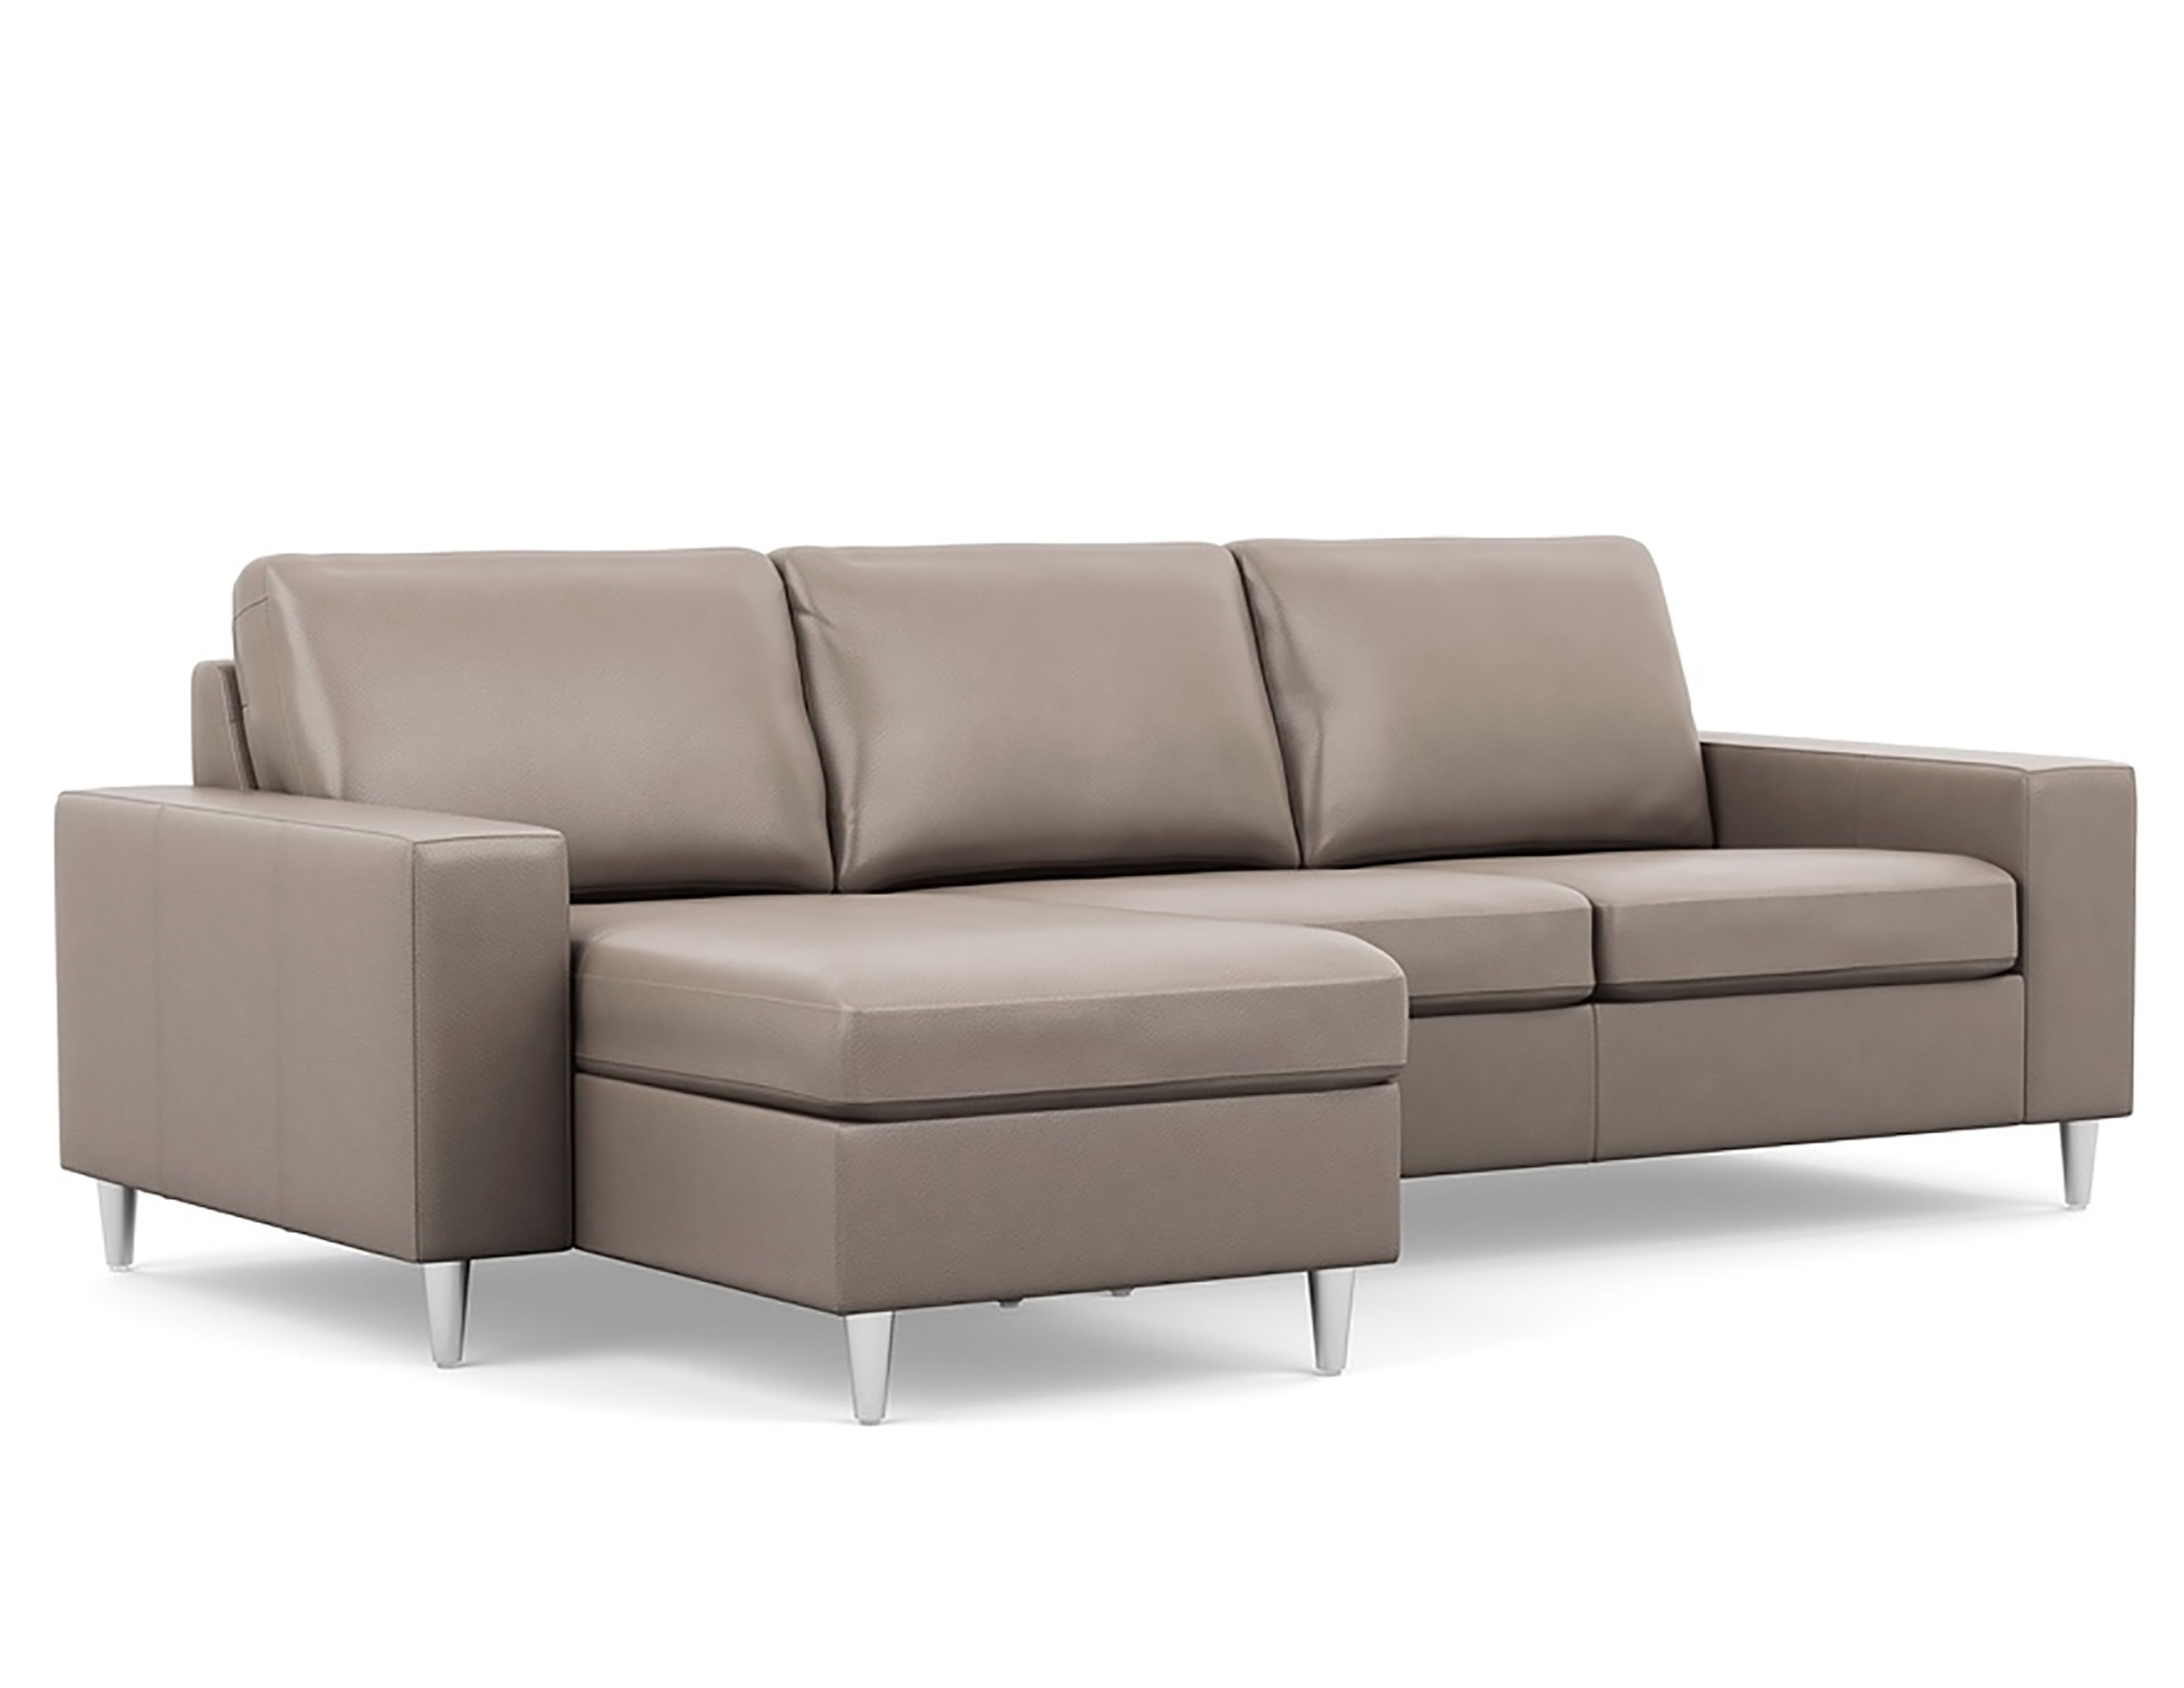 Stupendous Bello High Leg Chaise Sofa Or Sectional Chaise Sofas And Ncnpc Chair Design For Home Ncnpcorg